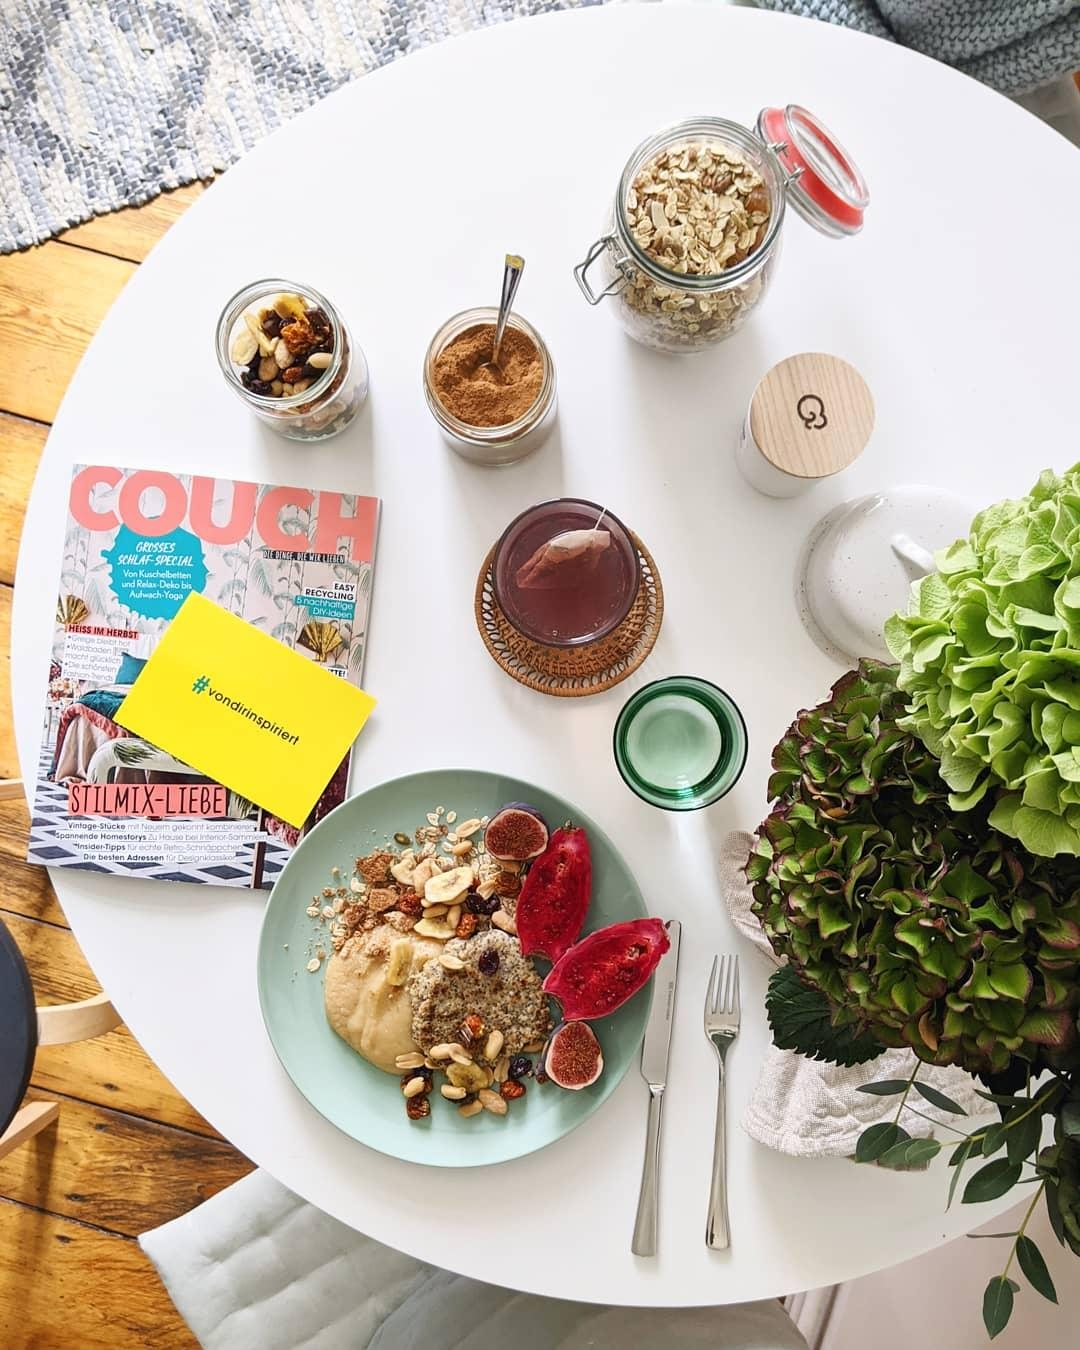 November-Ausgabe. #goodmorning #doyoureadme #couchmagazin #couchstyle #kitchentable #couchies